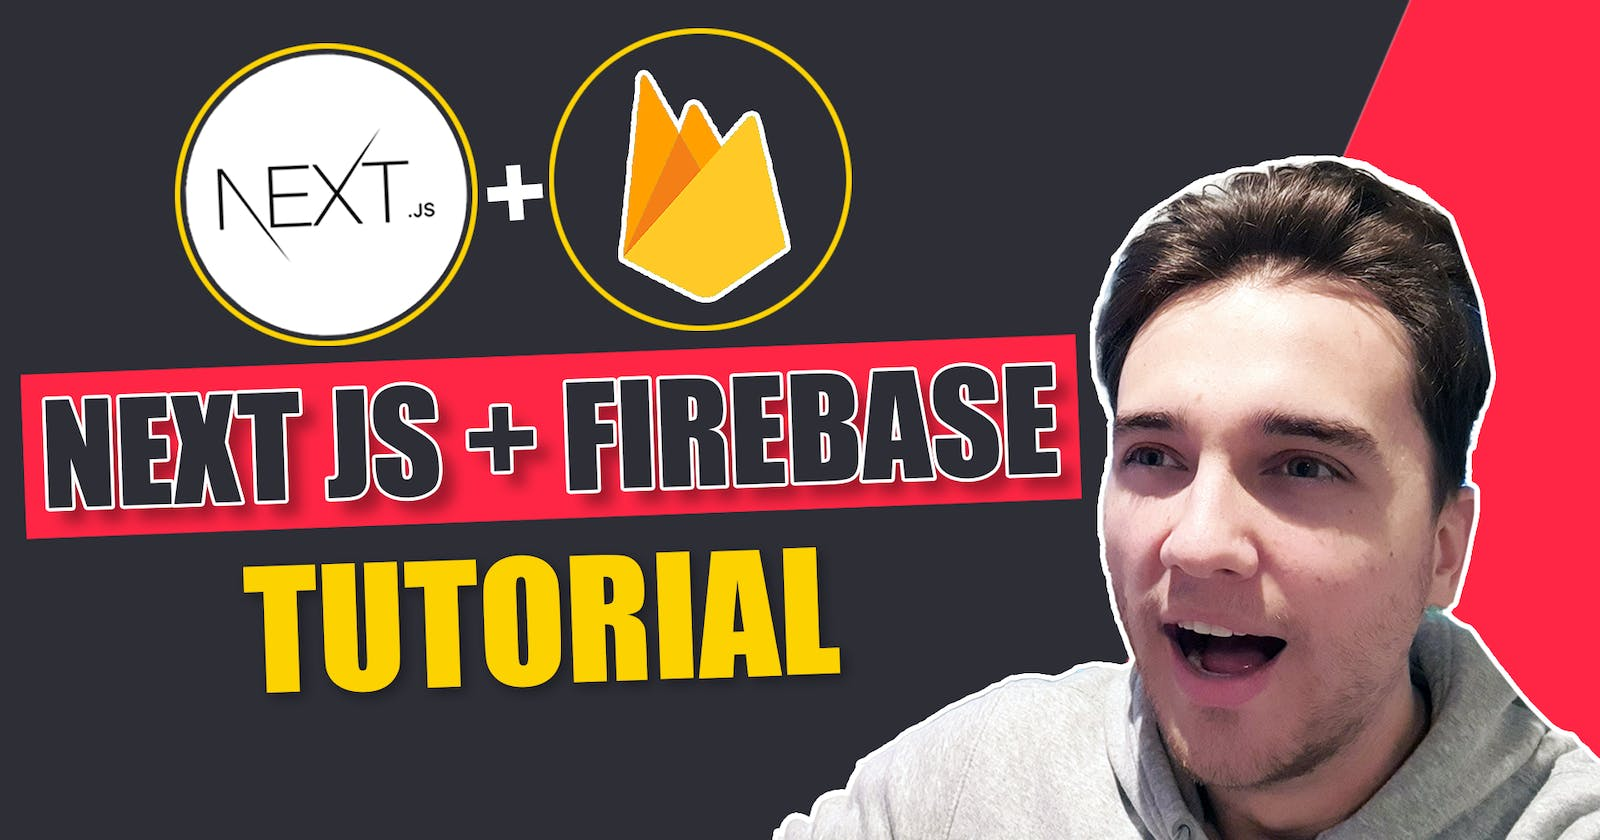 The Ultimate Guide To Firebase With Next.JS 🔥